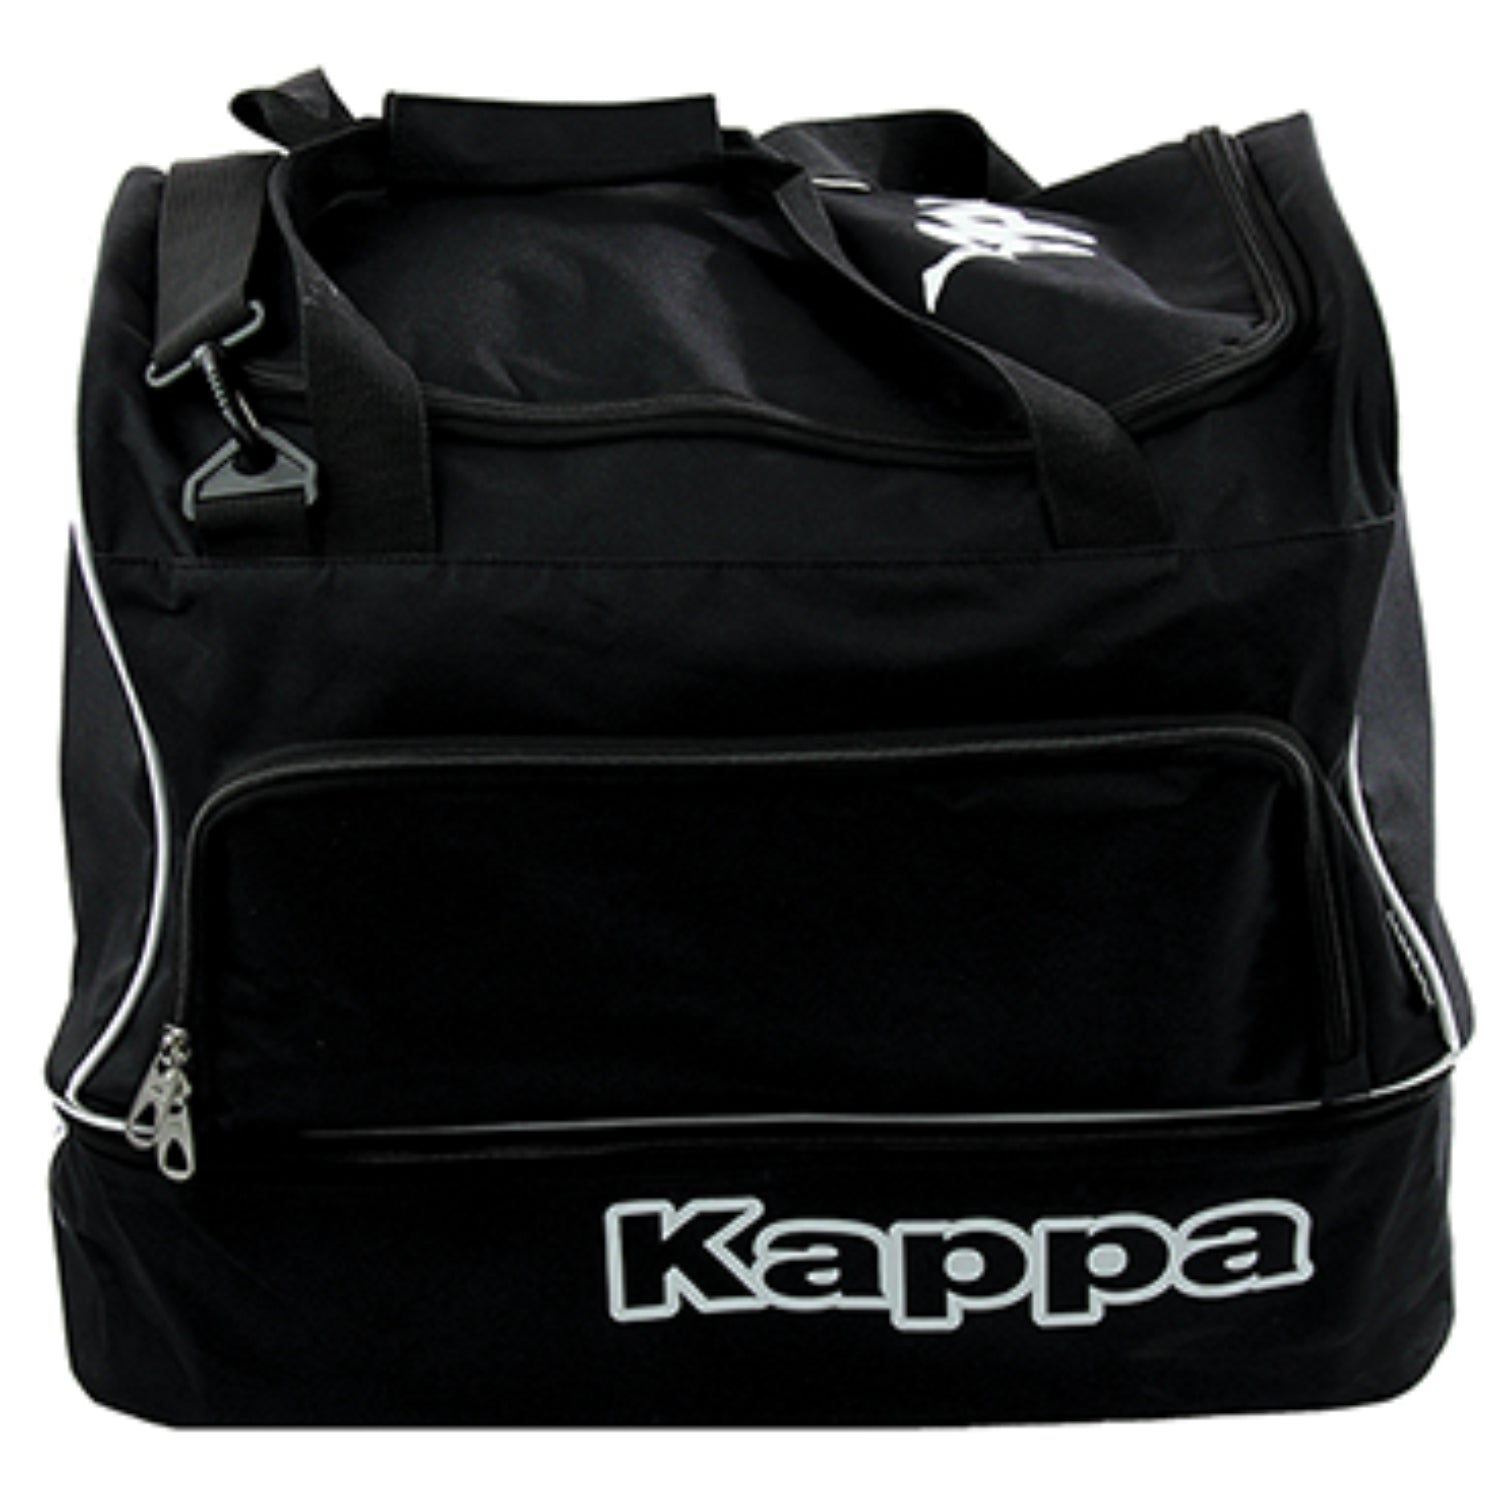 Kappa Moxio Italian player bag in black with compartment under the bag, white Kappa logo